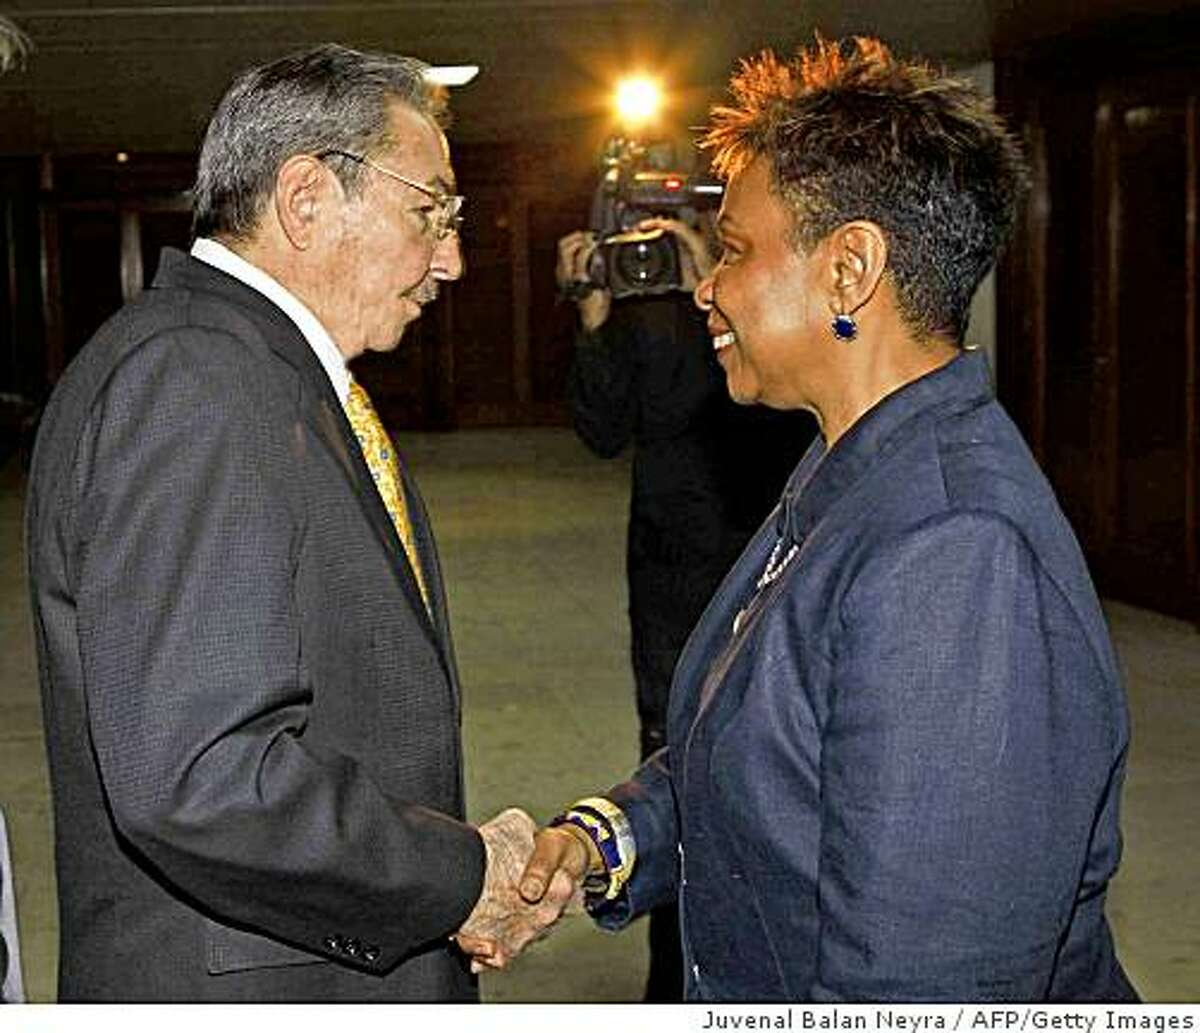 Cuban President Raul Castro (L) handshaks with US Congresswoman Barbara Lee-D (R), on April 06, 2009 at State Council in Havana. US lawmakers are visiting Cuba to try to end mutual distrust and amid reports that President Barack Obama was planning to ease economic sanctions, including travel restrictions on Cuban-Americans. Cuba's revolutionary leader Fidel Castro said his nation was not afraid of dialogue with the United States and did not want to extend the five decades of confrontation with its powerful neighbor.AFP PHOTO/Granma Newspaper/Juvenal Balan/HO (Photo credit should read JUVENAL BALAN NEYRA/AFP/Getty Images)